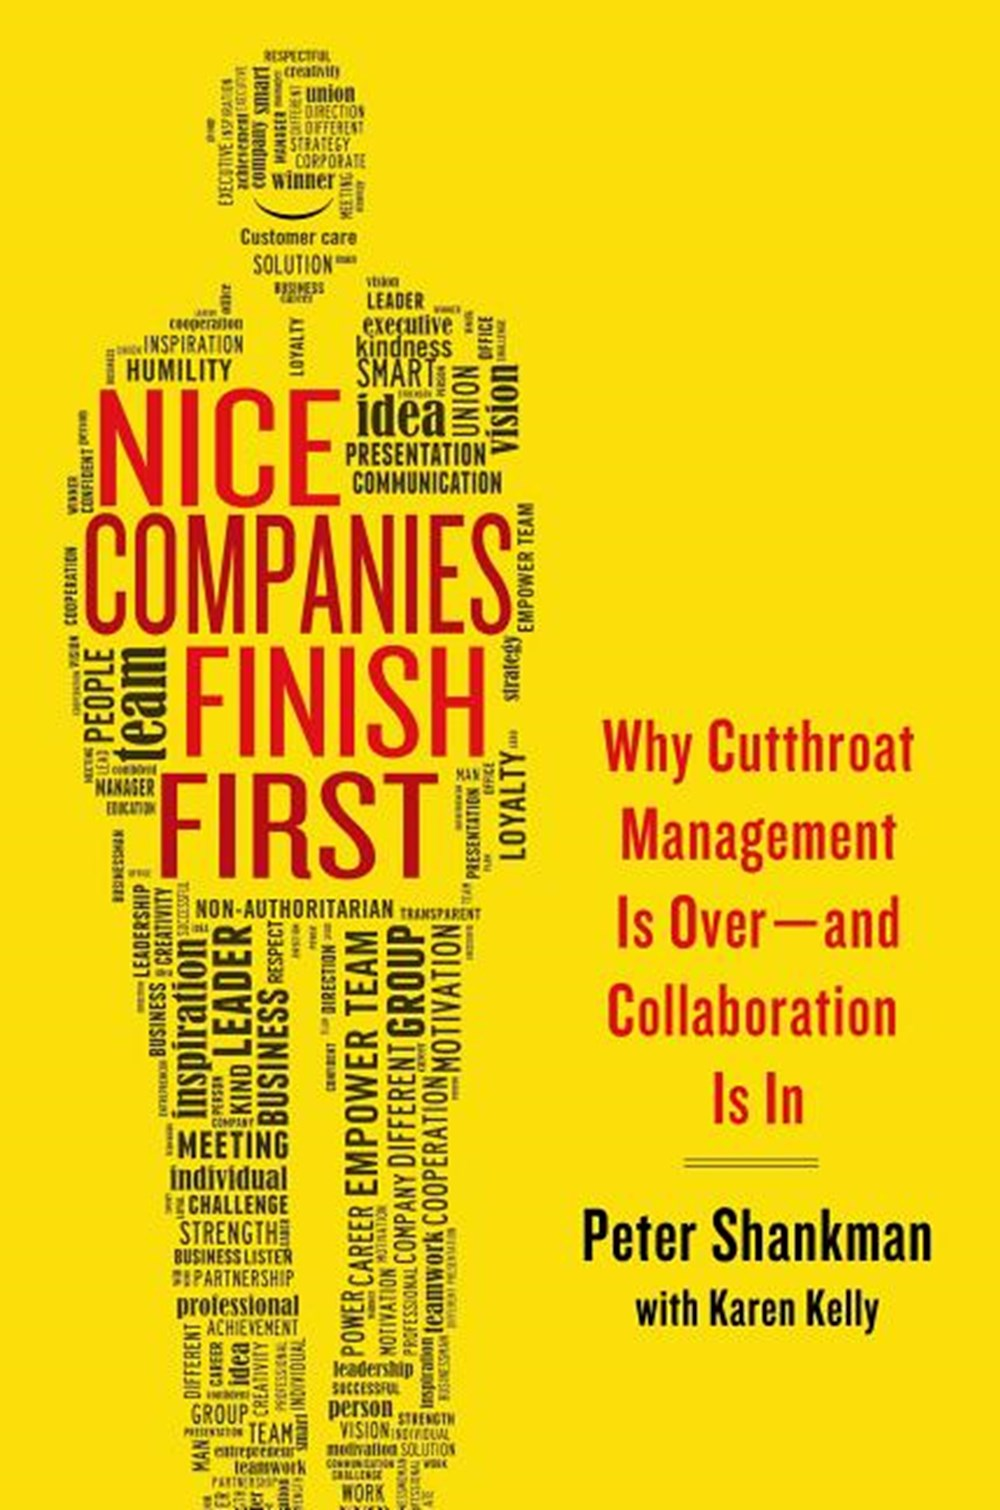 Nice Companies Finish First Why Cutthroat Management Is Over--And Collaboration Is in